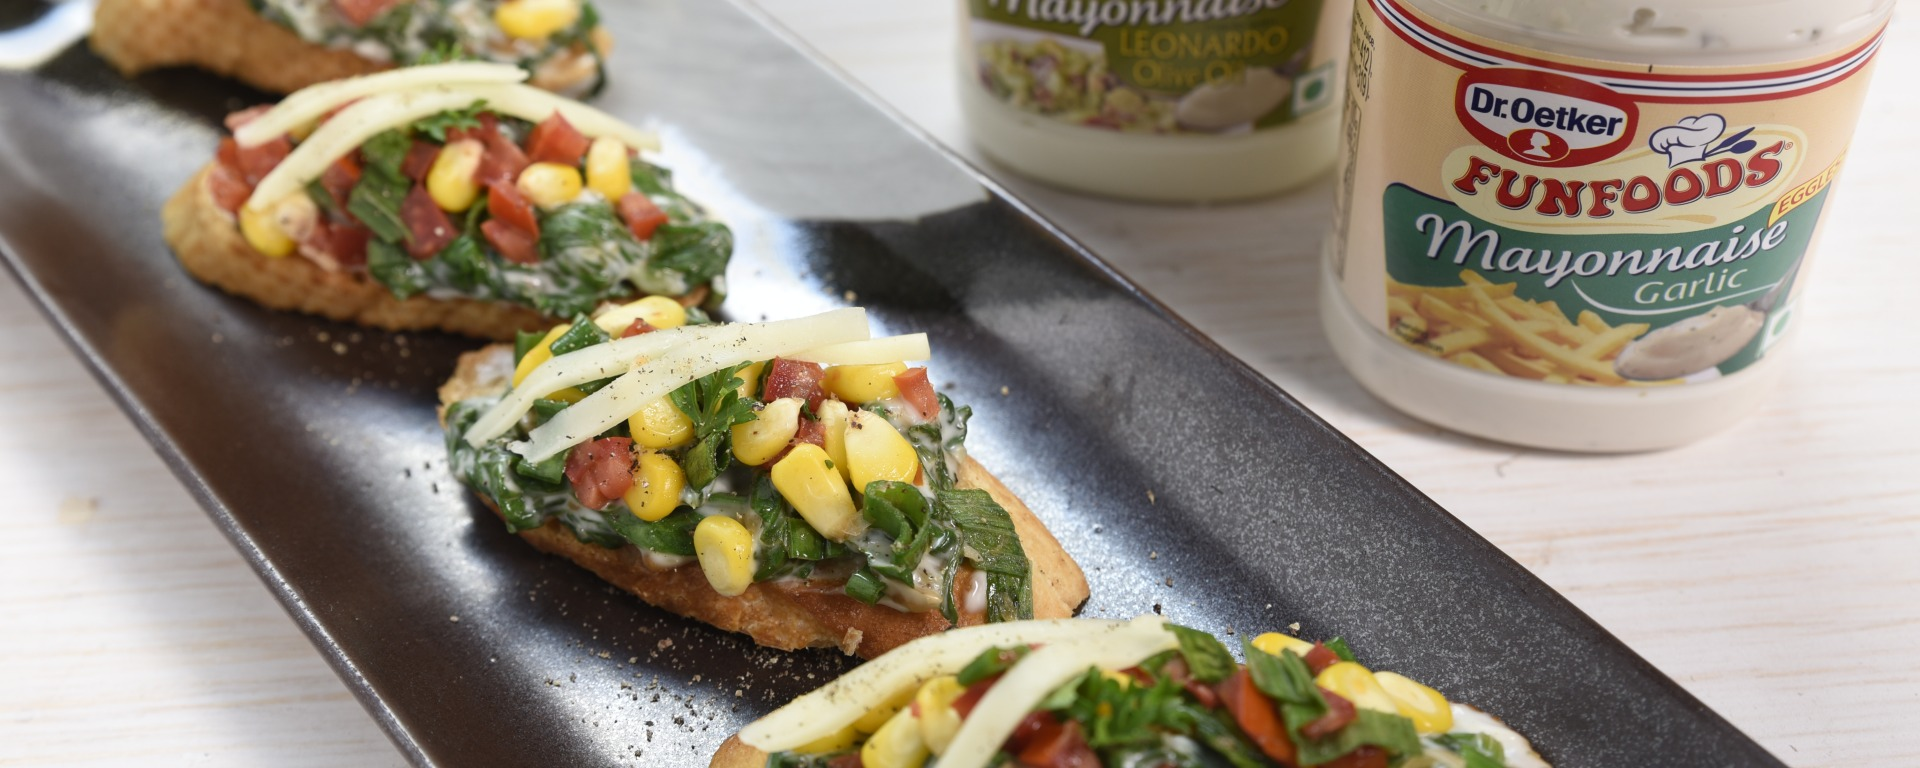 Veg Bruschetta Guest Recipe by Dr. Oetker Foodeezjunction.com